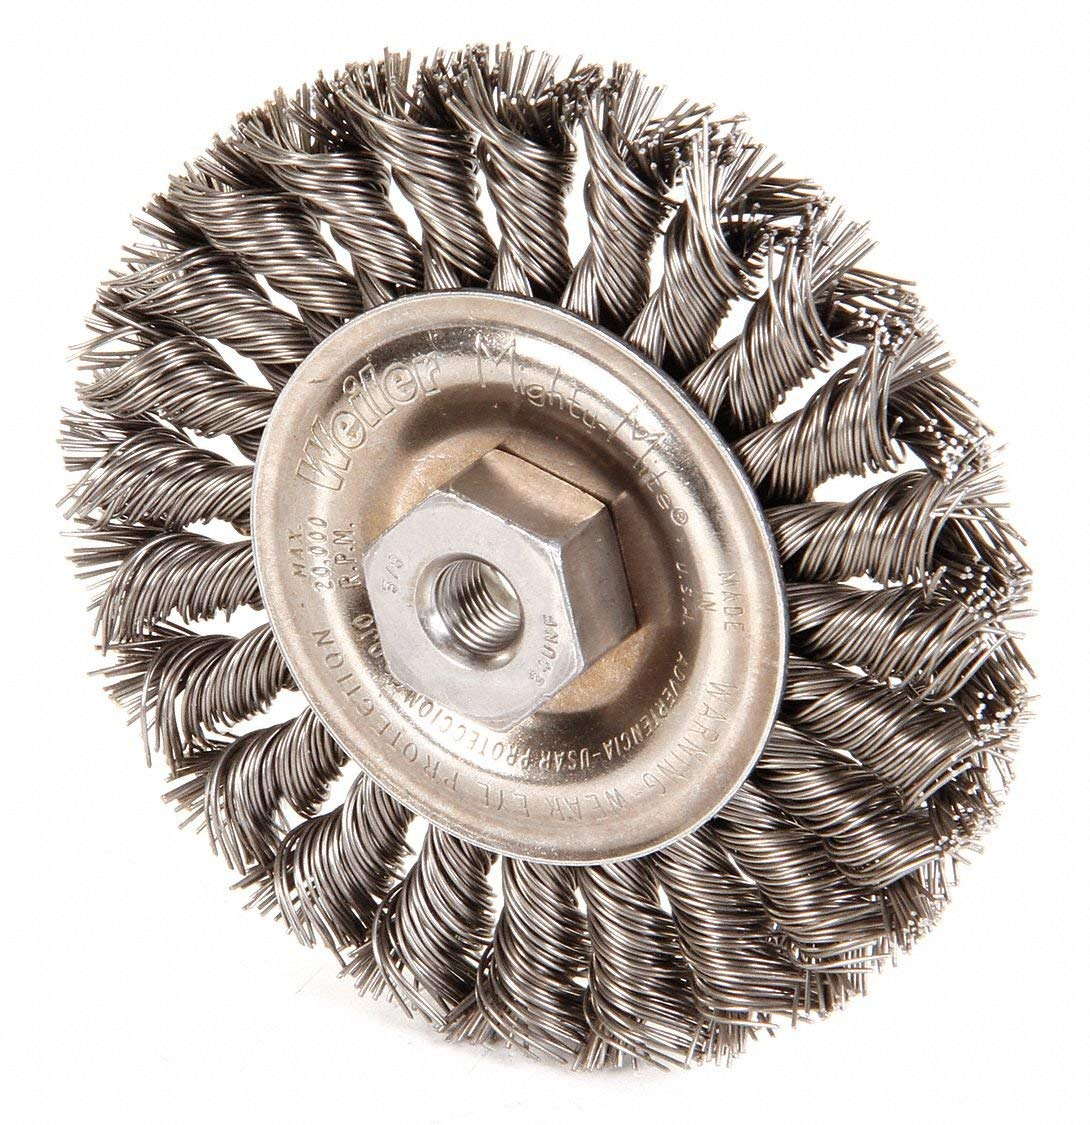 "Weiler 4"" Twisted Wire Wheel Brush, Arbor Hole Mounting, 0.020"" Wire Dia, 7/8"" Bristle Trim Length, 1 EA"